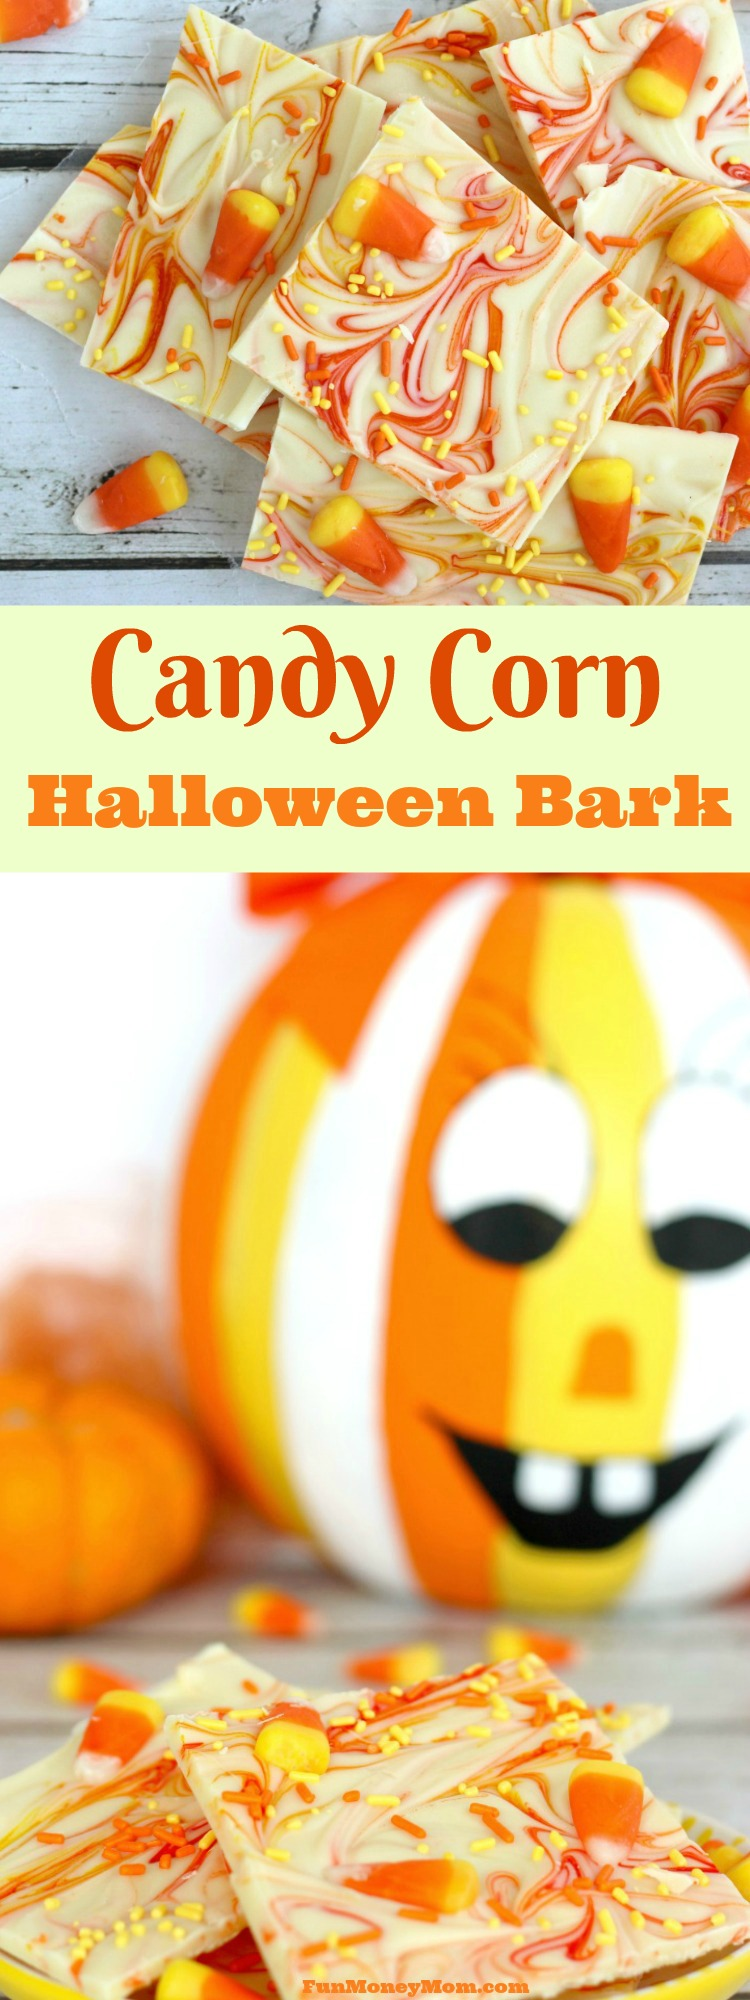 Need a fun Halloween treat? This Candy Corn Halloween Bark is both easy to make and fun to eat! It's perfect for Halloween parties or just a white chocolate Halloween treat.